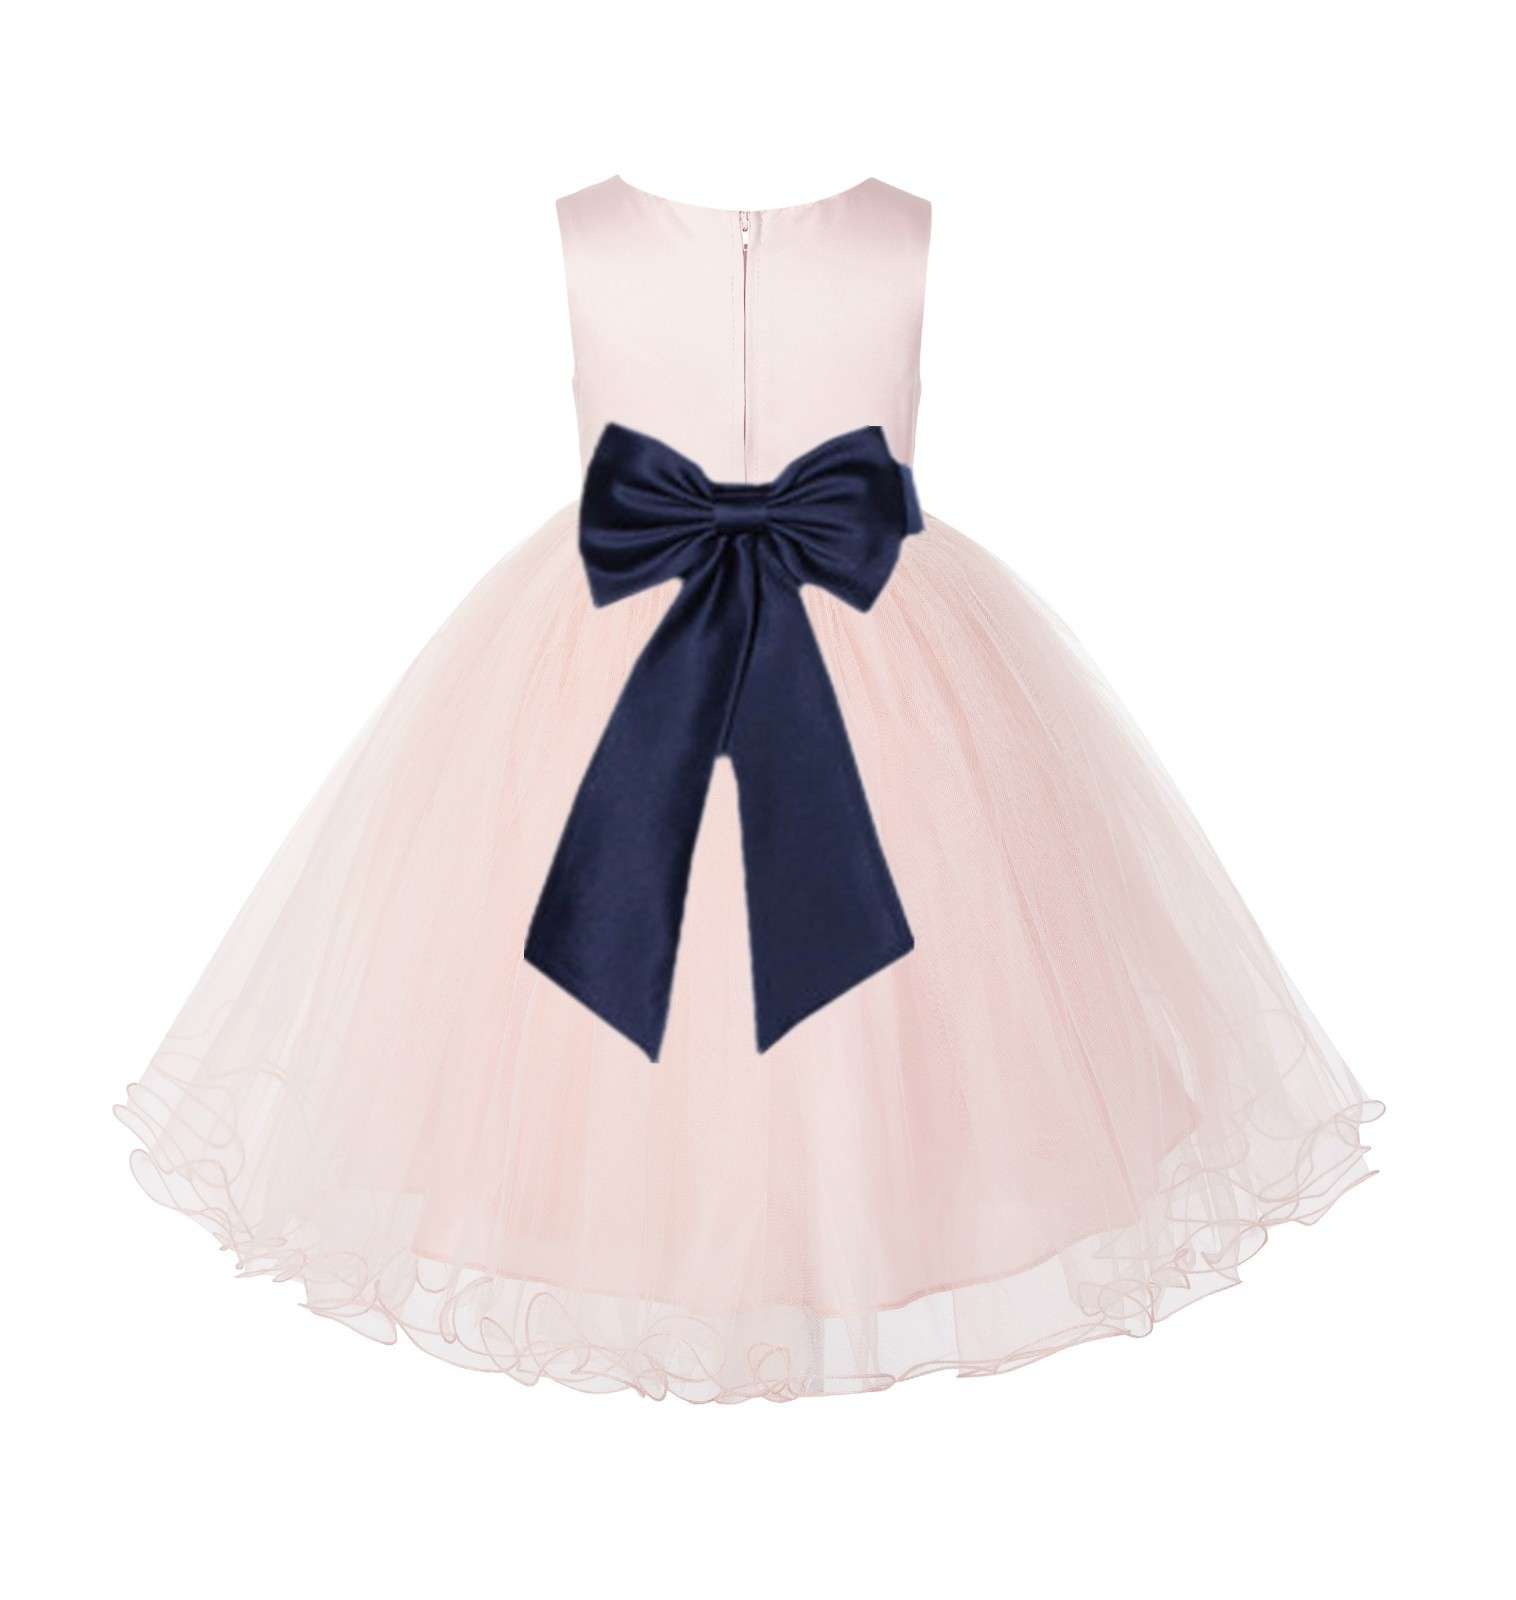 Blush PInk / Marine Tulle Rattail Edge Flower Girl Dress Wedding Bridesmaid 829T